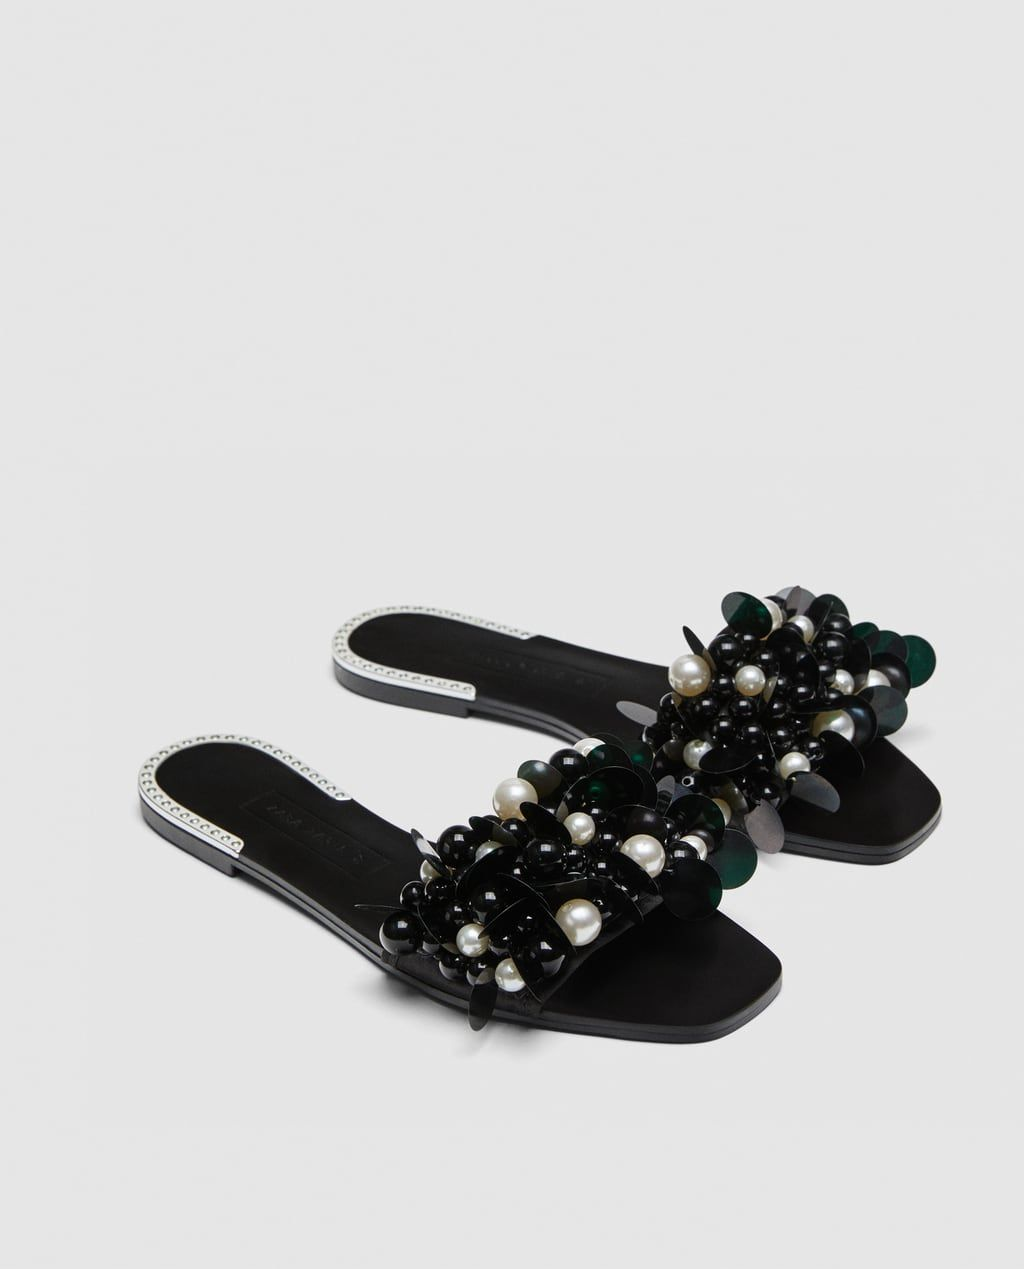 PEARL BEADS from Zara   Pearl sandals